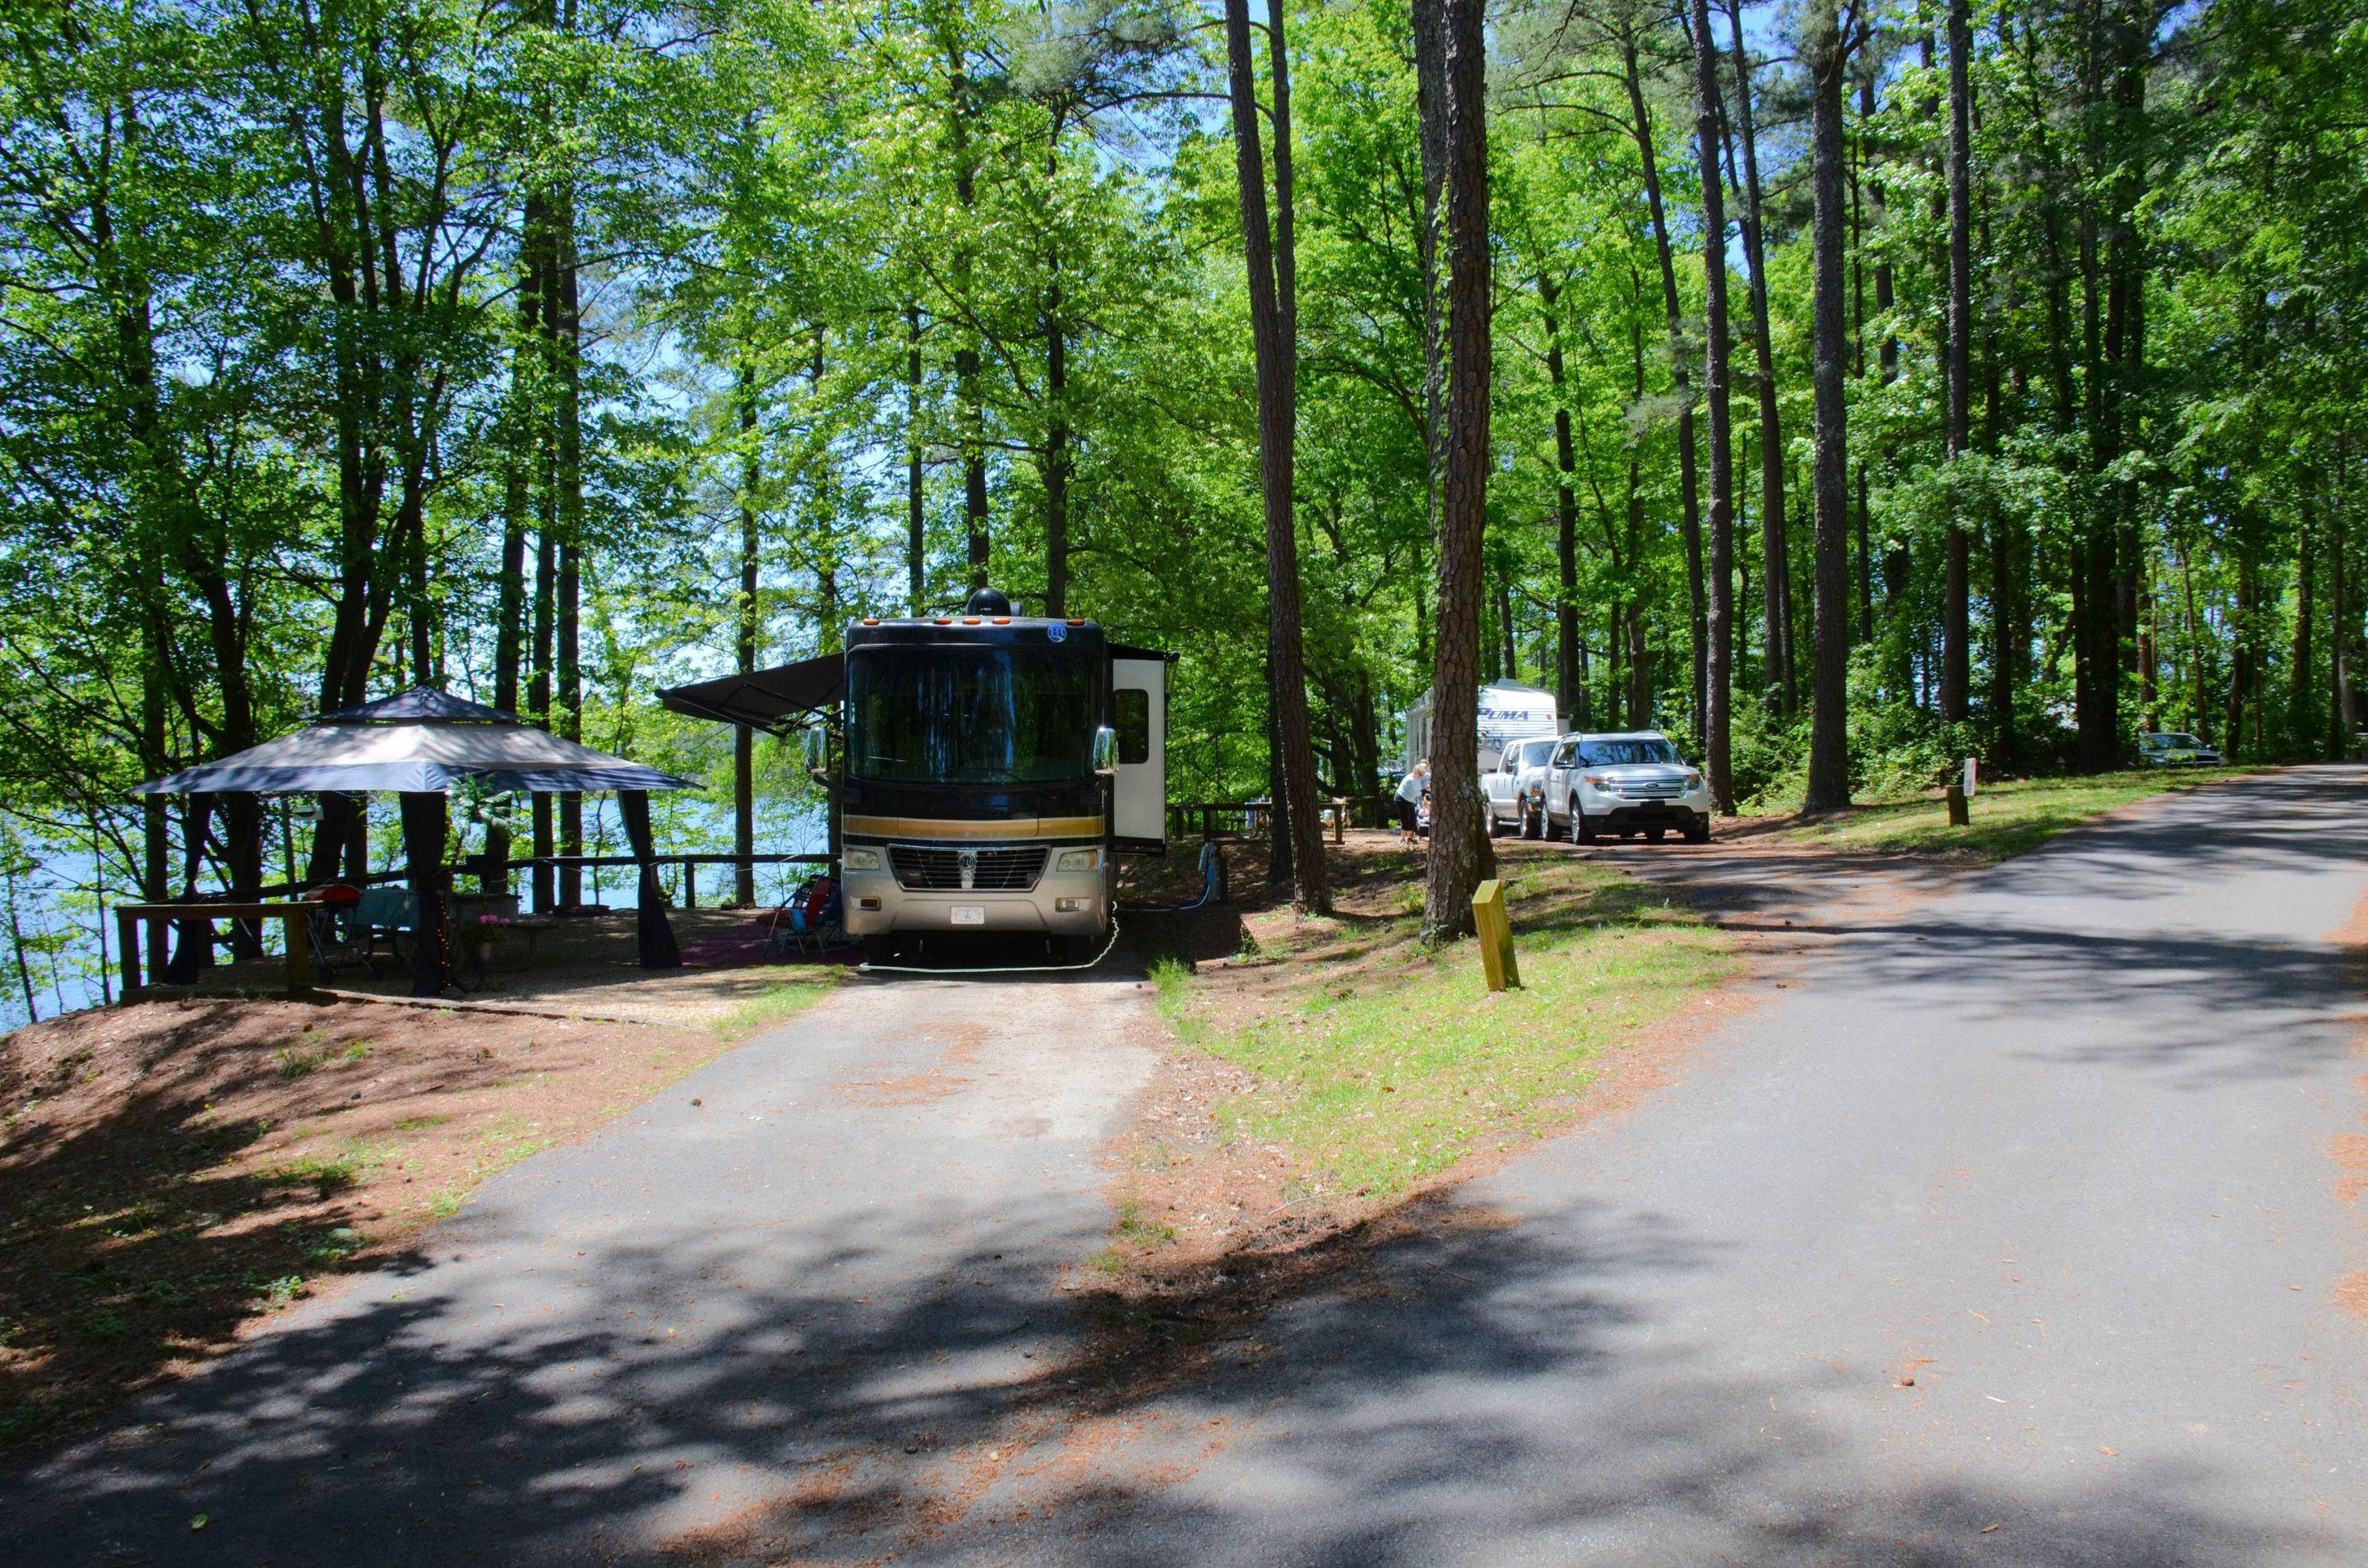 Driveway entrance angle/slope, utilities-side clearance, awning-side clearance.McKinney Campground, campsite 130.